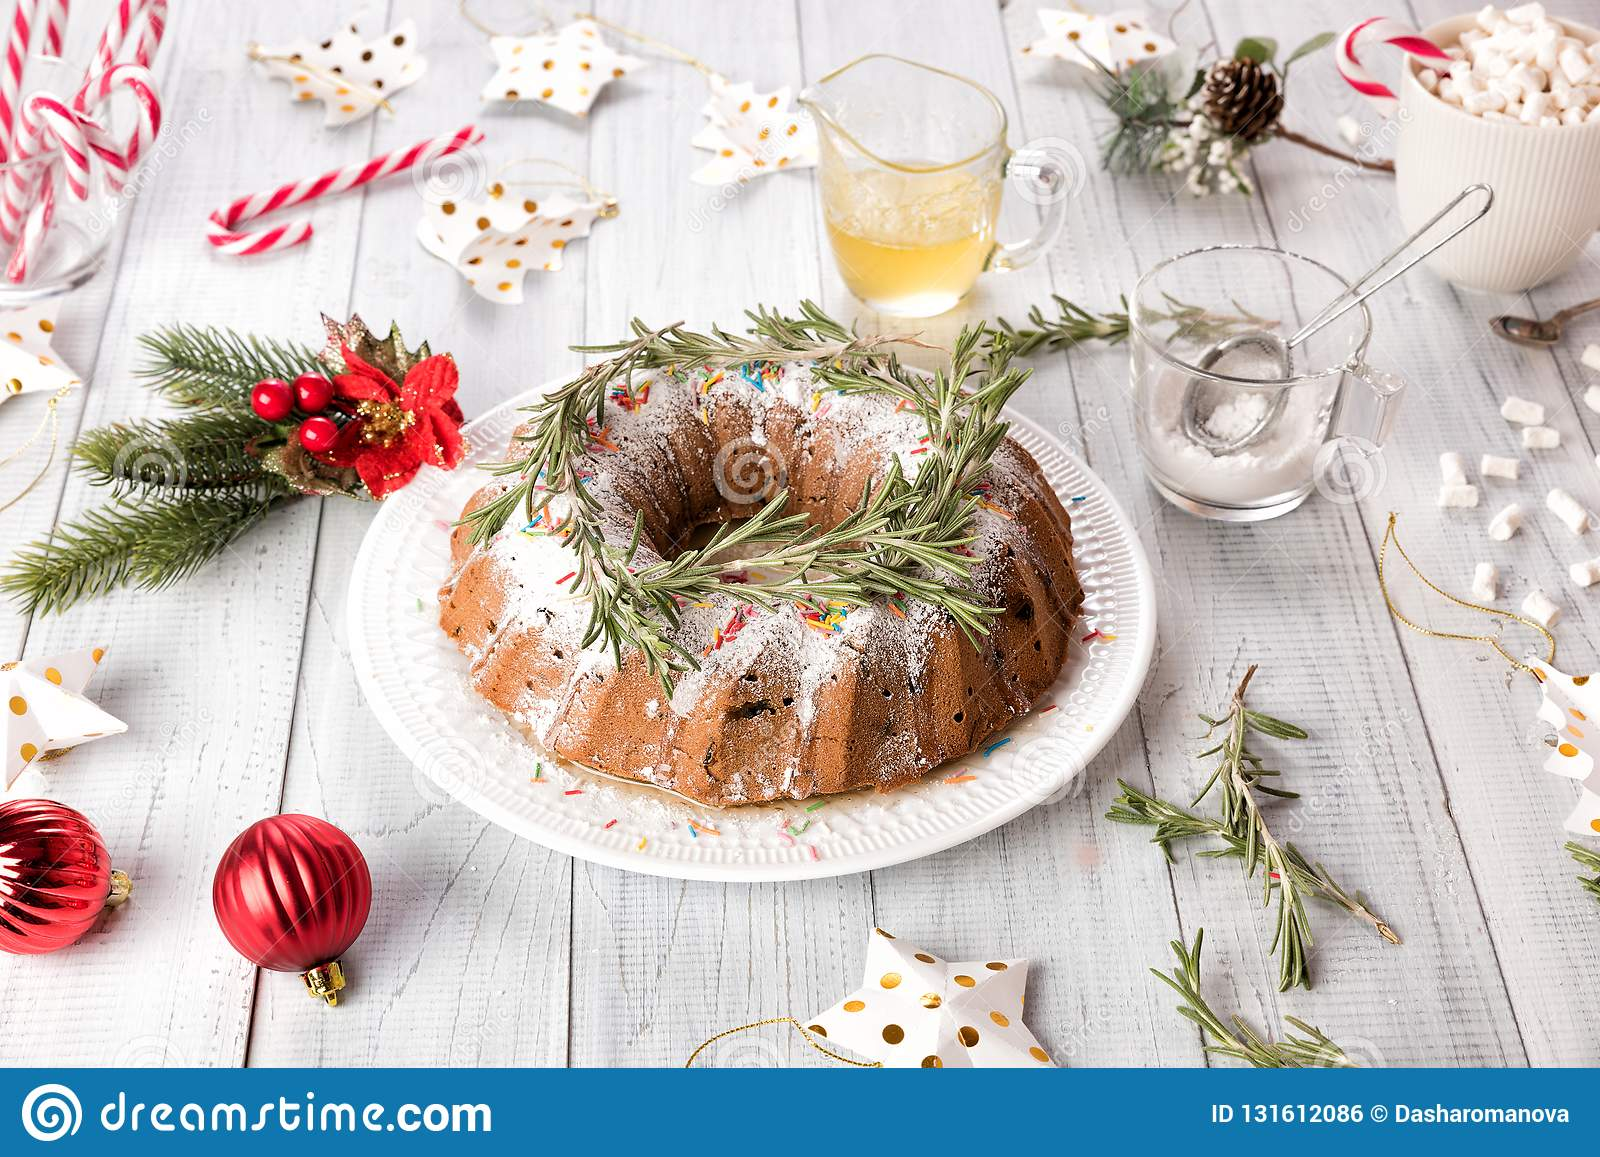 Traditional Christmas fruit cake on a white wooden table. Homemade pudding with festive decorations, candy canes